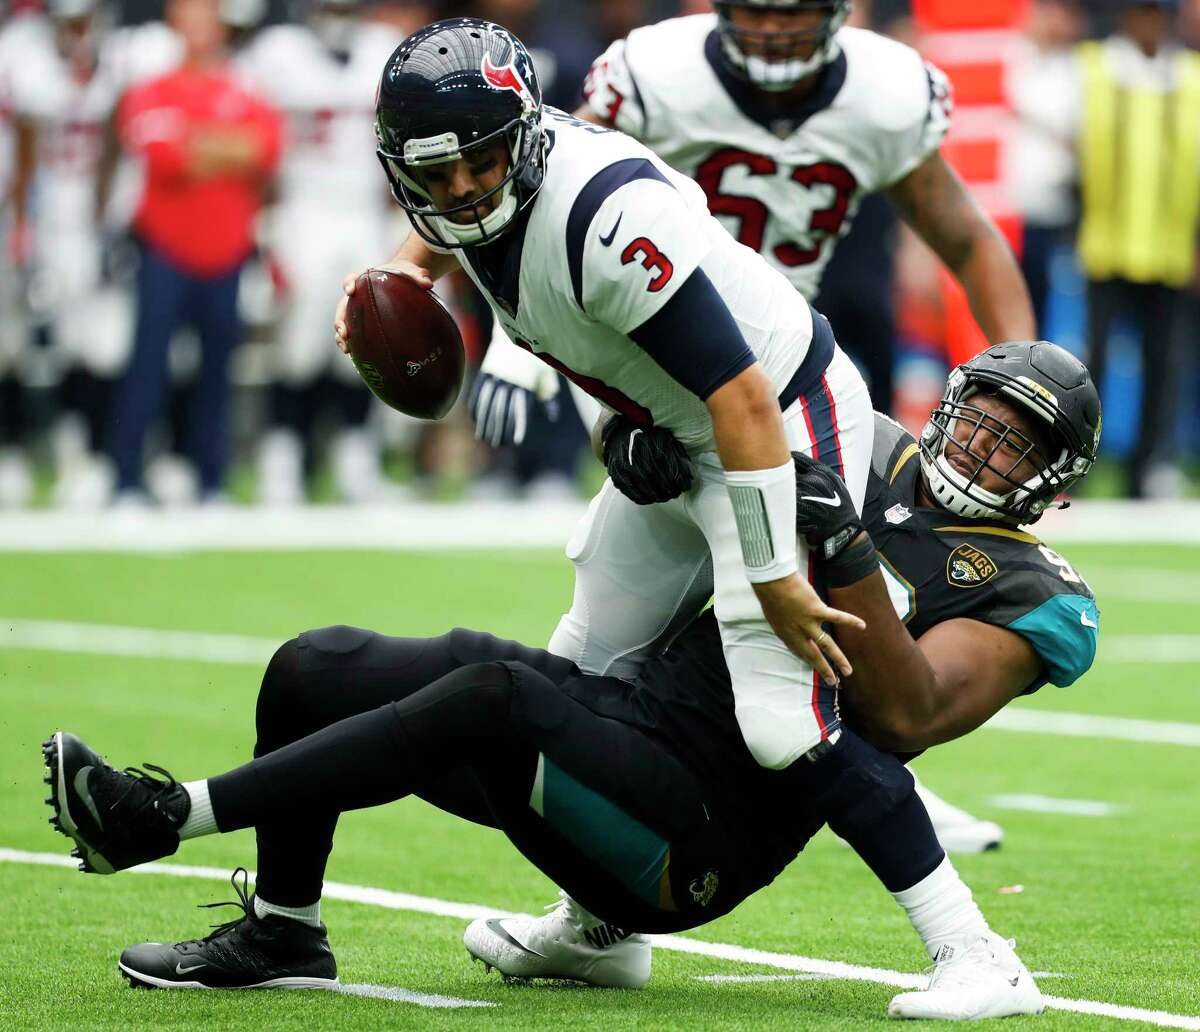 Houston Texans quarterback Tom Savage (3) is sacked by Jacksonville Jaguars defensive tackle Calais Campbell (93) during the second quarter of an NFL football game at NRG Stadium on Sunday, Sept. 10, 2017, in Houston.